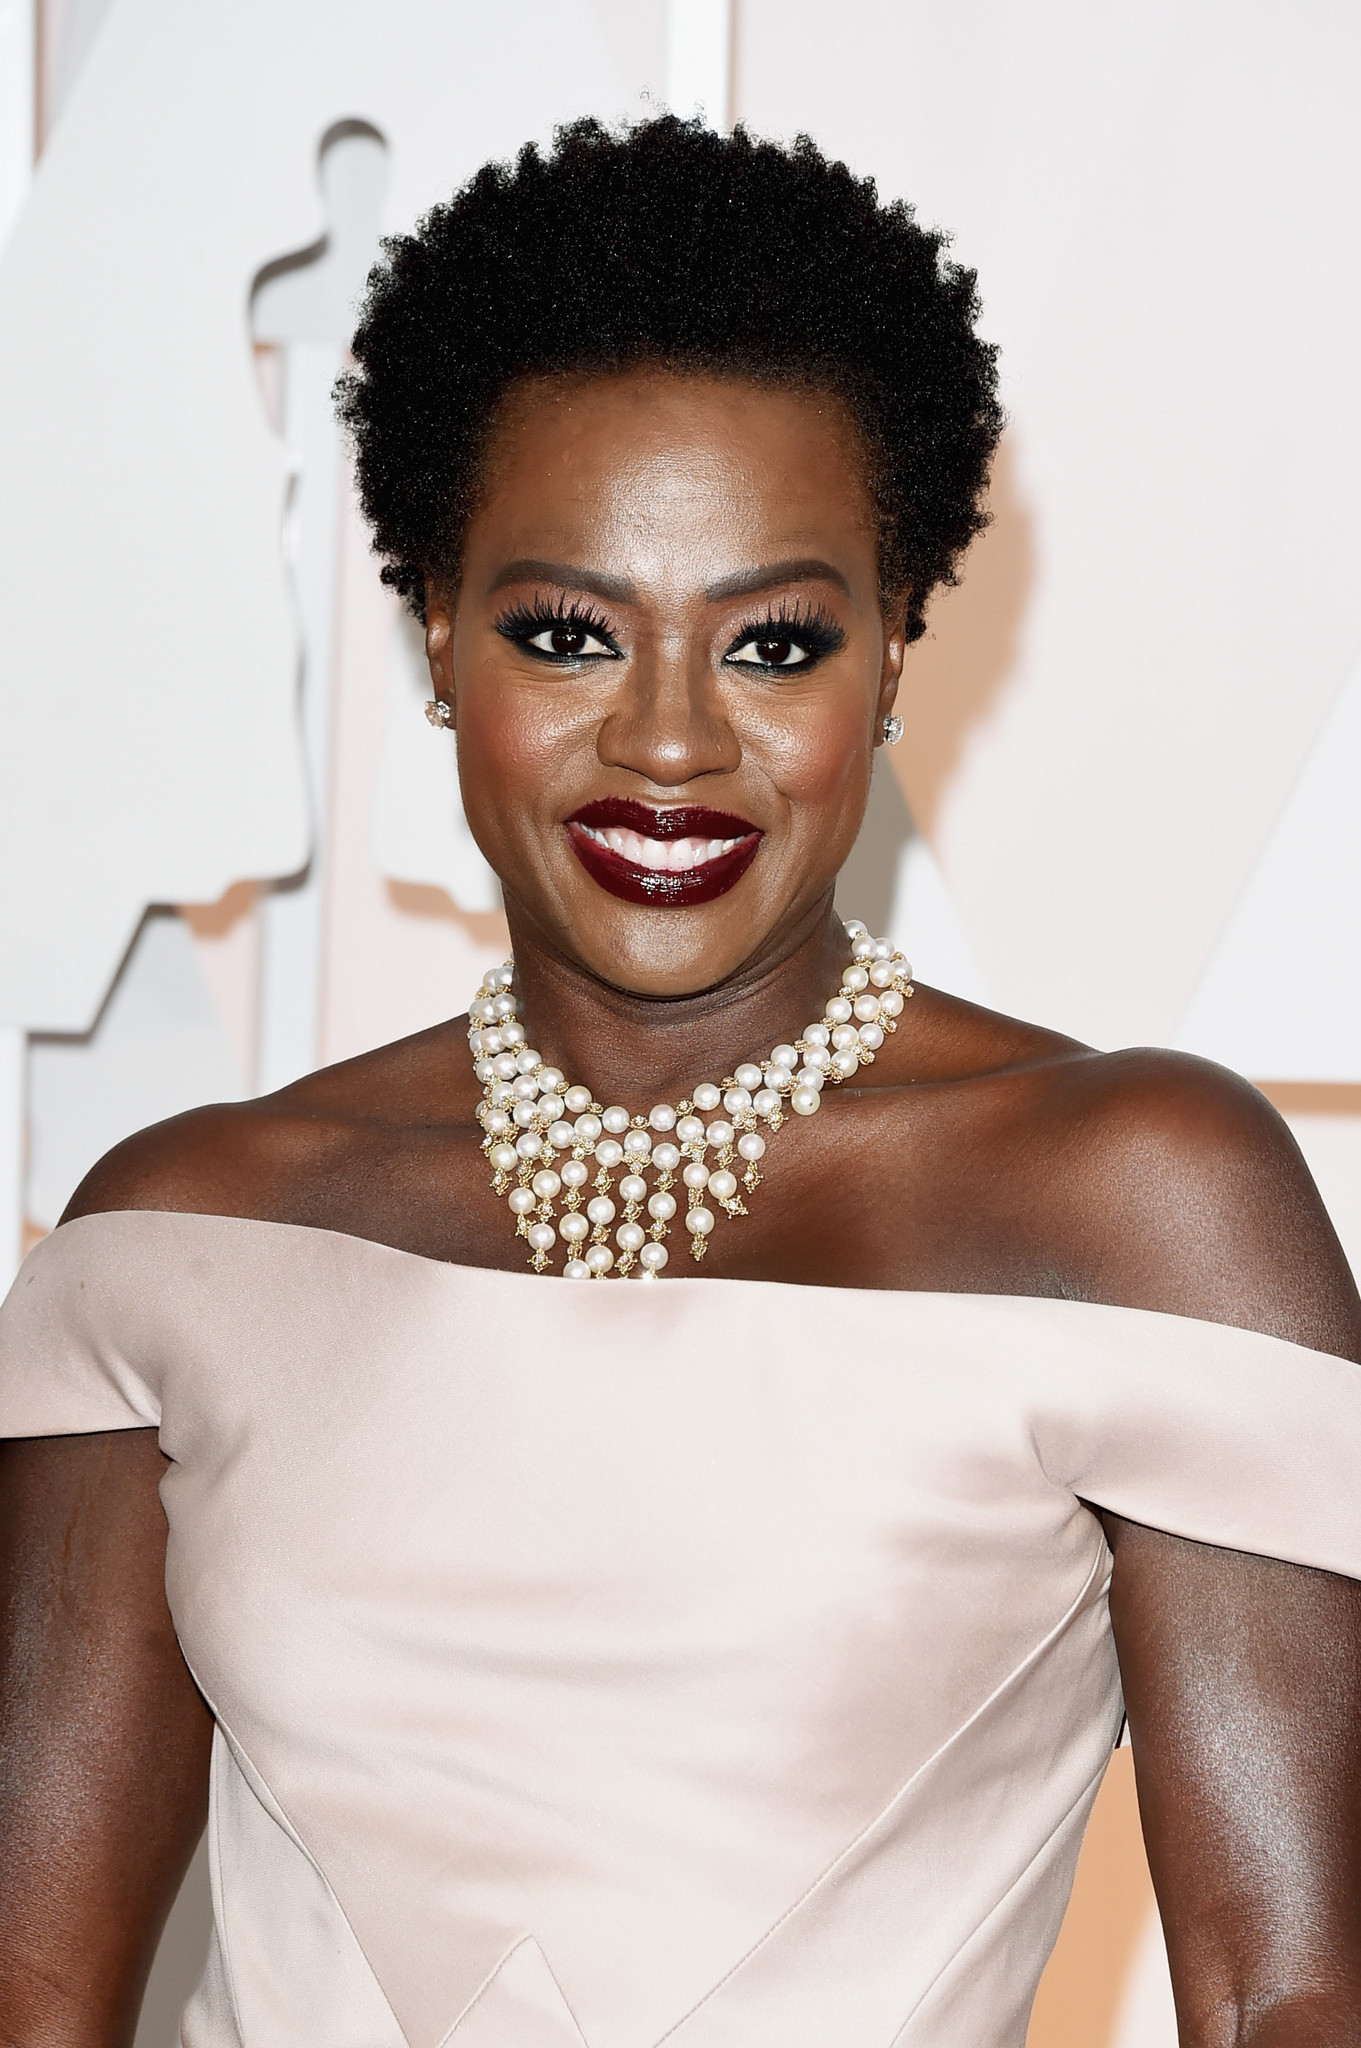 Check Out All The Red Carpet Pictures From The 87th Annual Academy Awards (The Oscars)